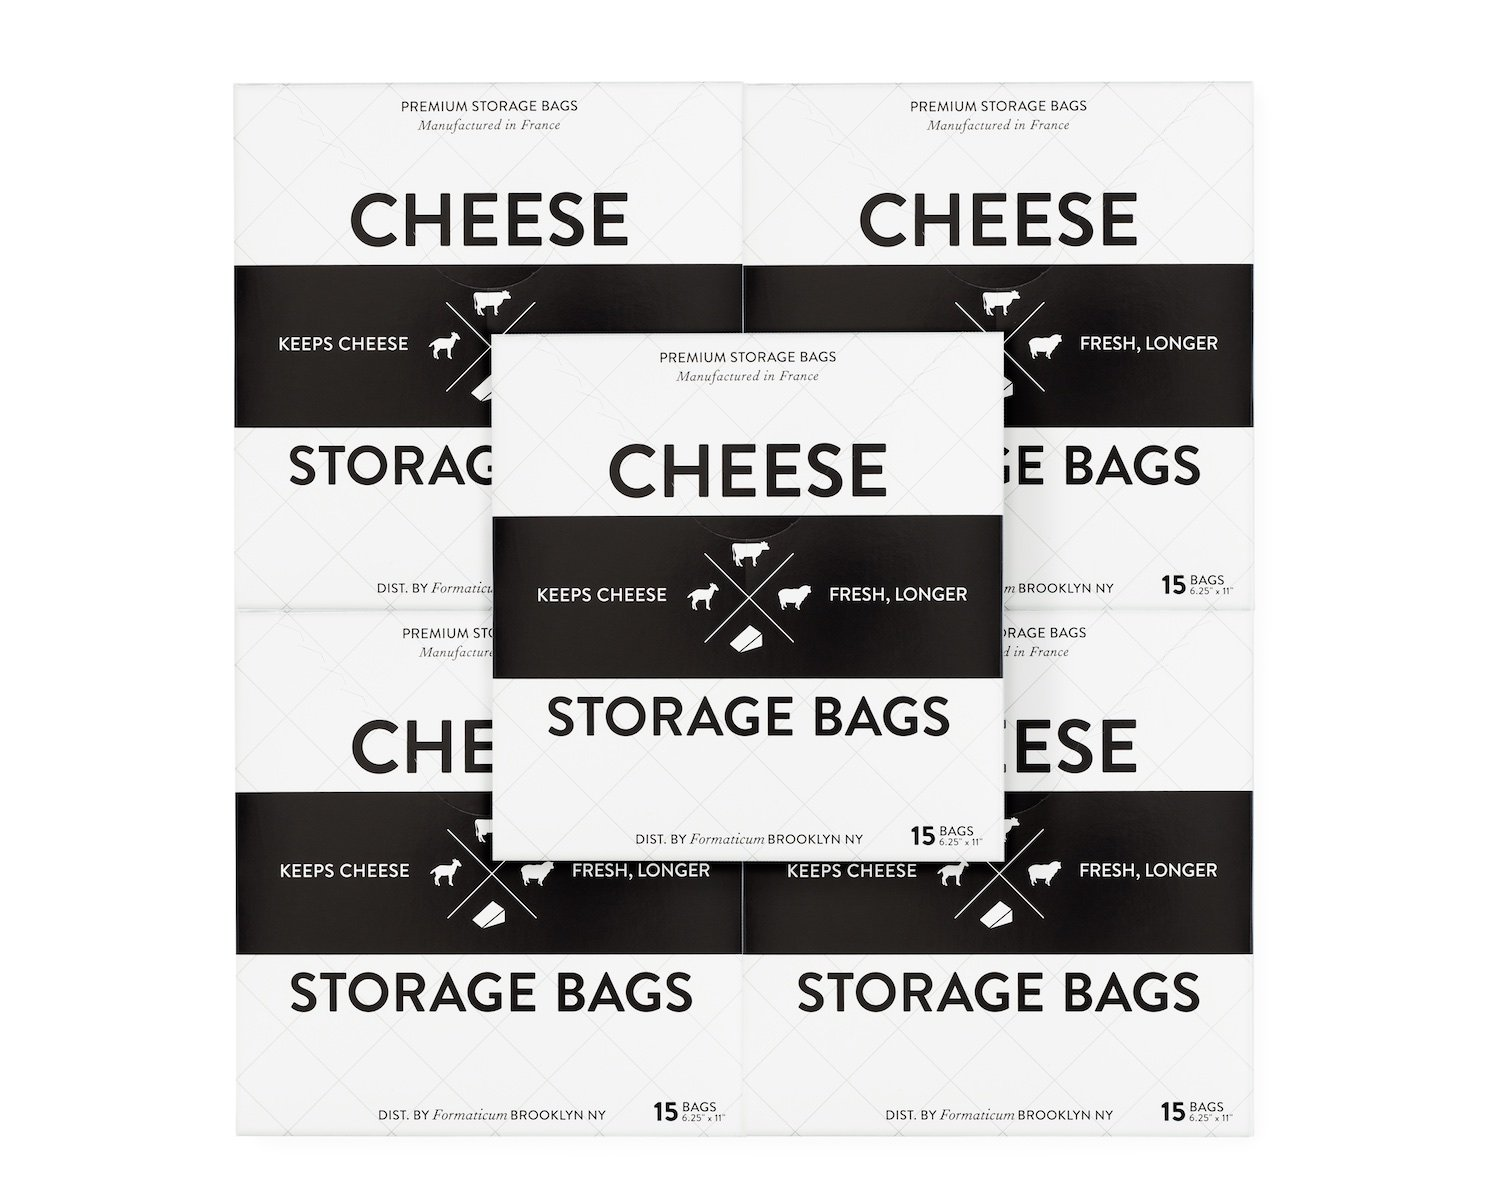 Formaticum Cheese Storage Bags 75 Count